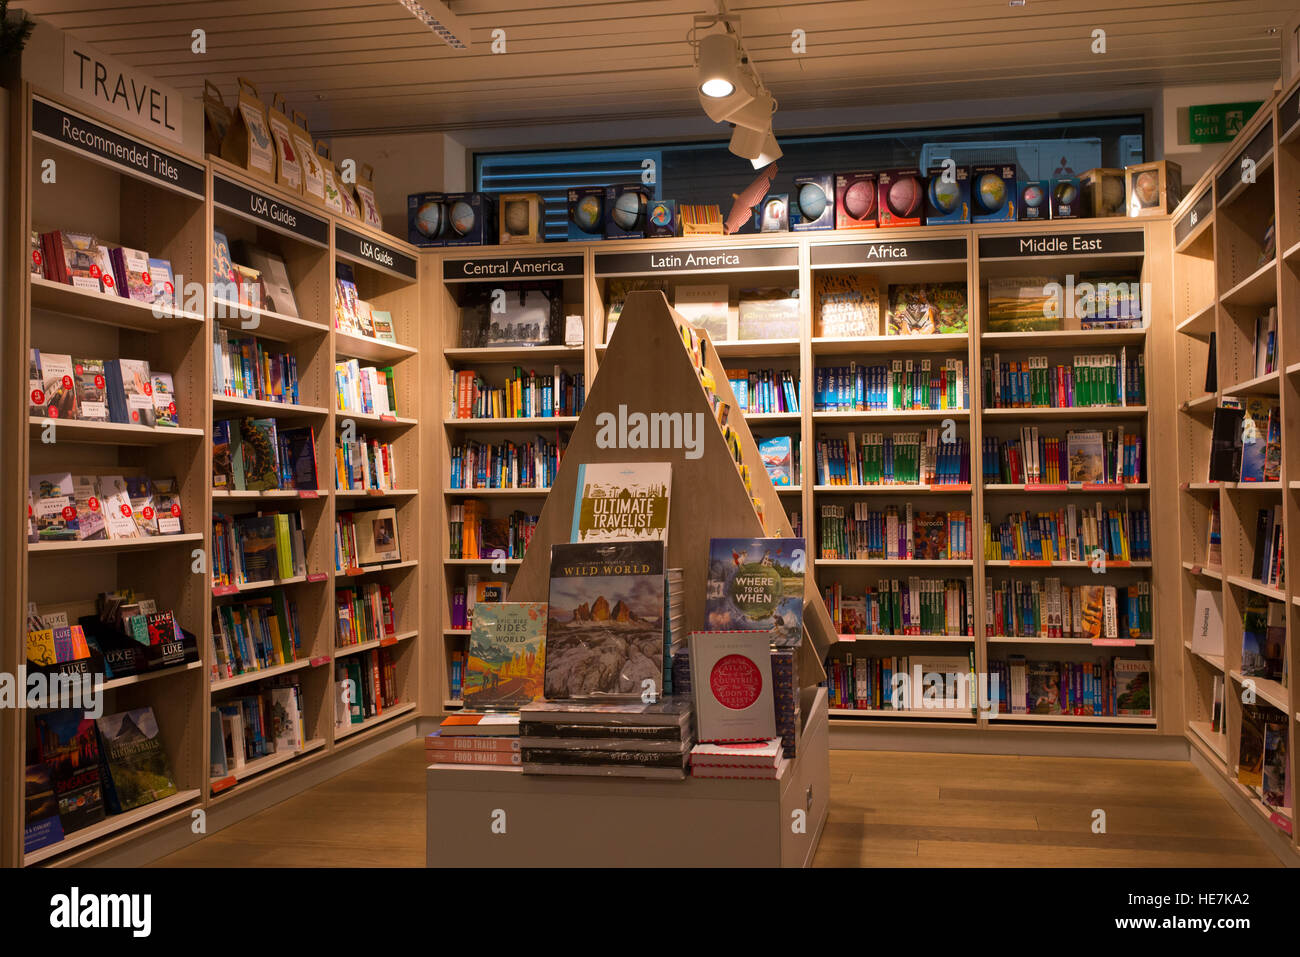 Interior of a modern bookshop with wooden shelves full of books. Section of  travel books and guides